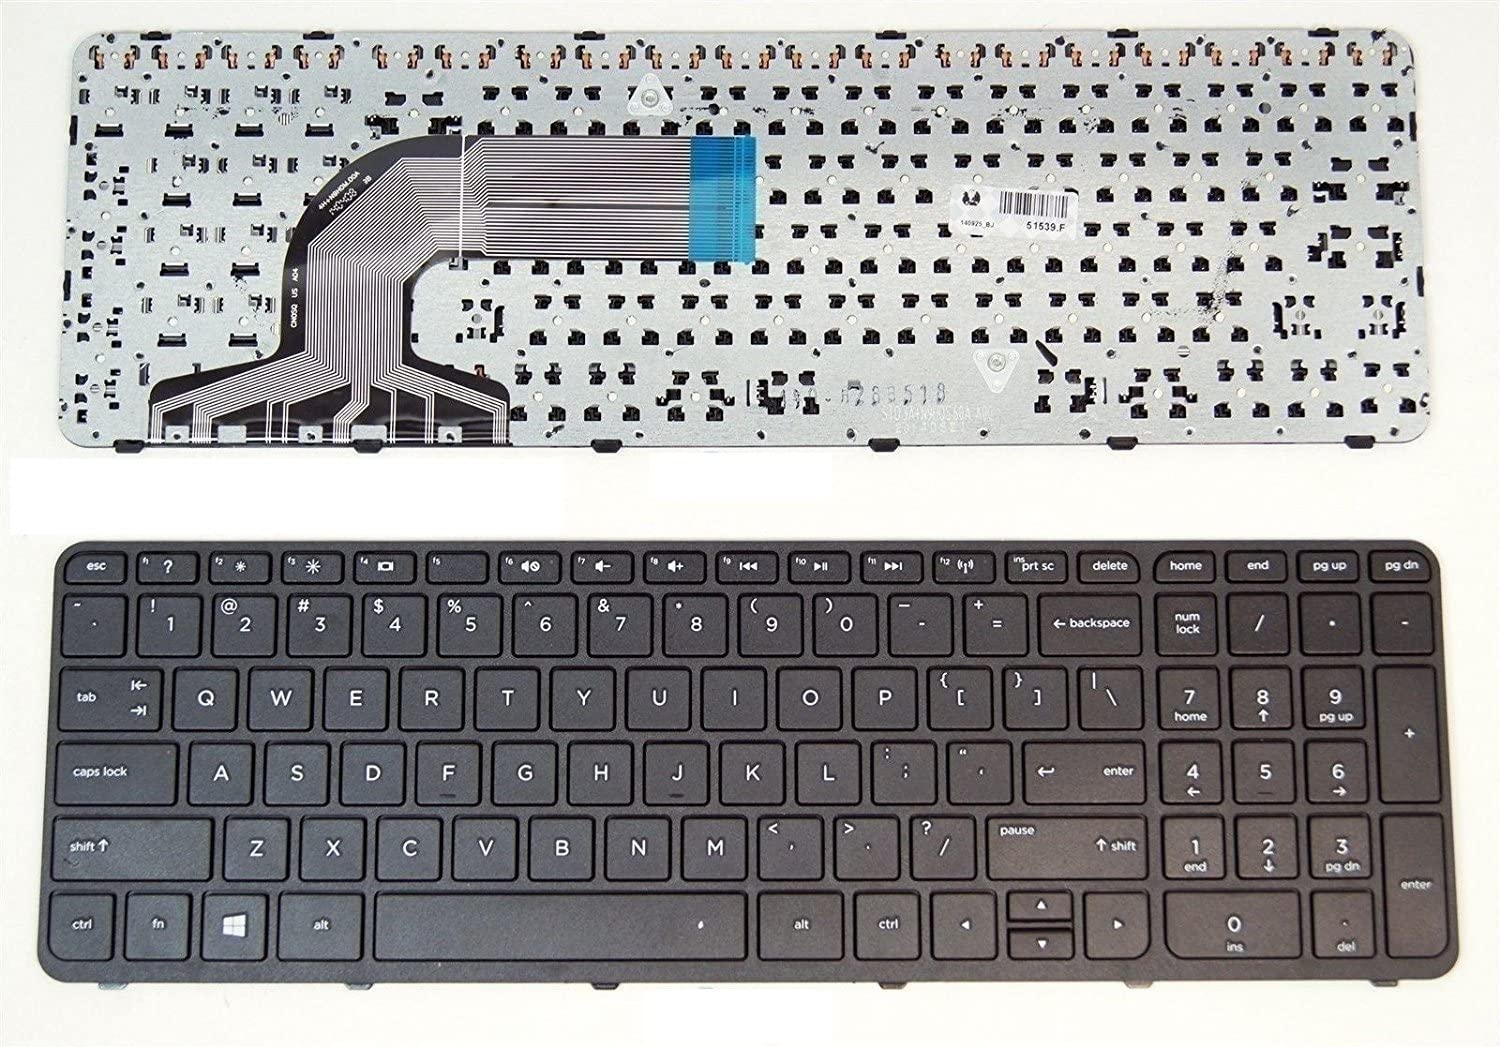 wangpeng New US Keyboard For HP Pavilion 15-R026TX 15-R027TX 15-R032TX 15-R033TX 15-R034TX keyboard NEW